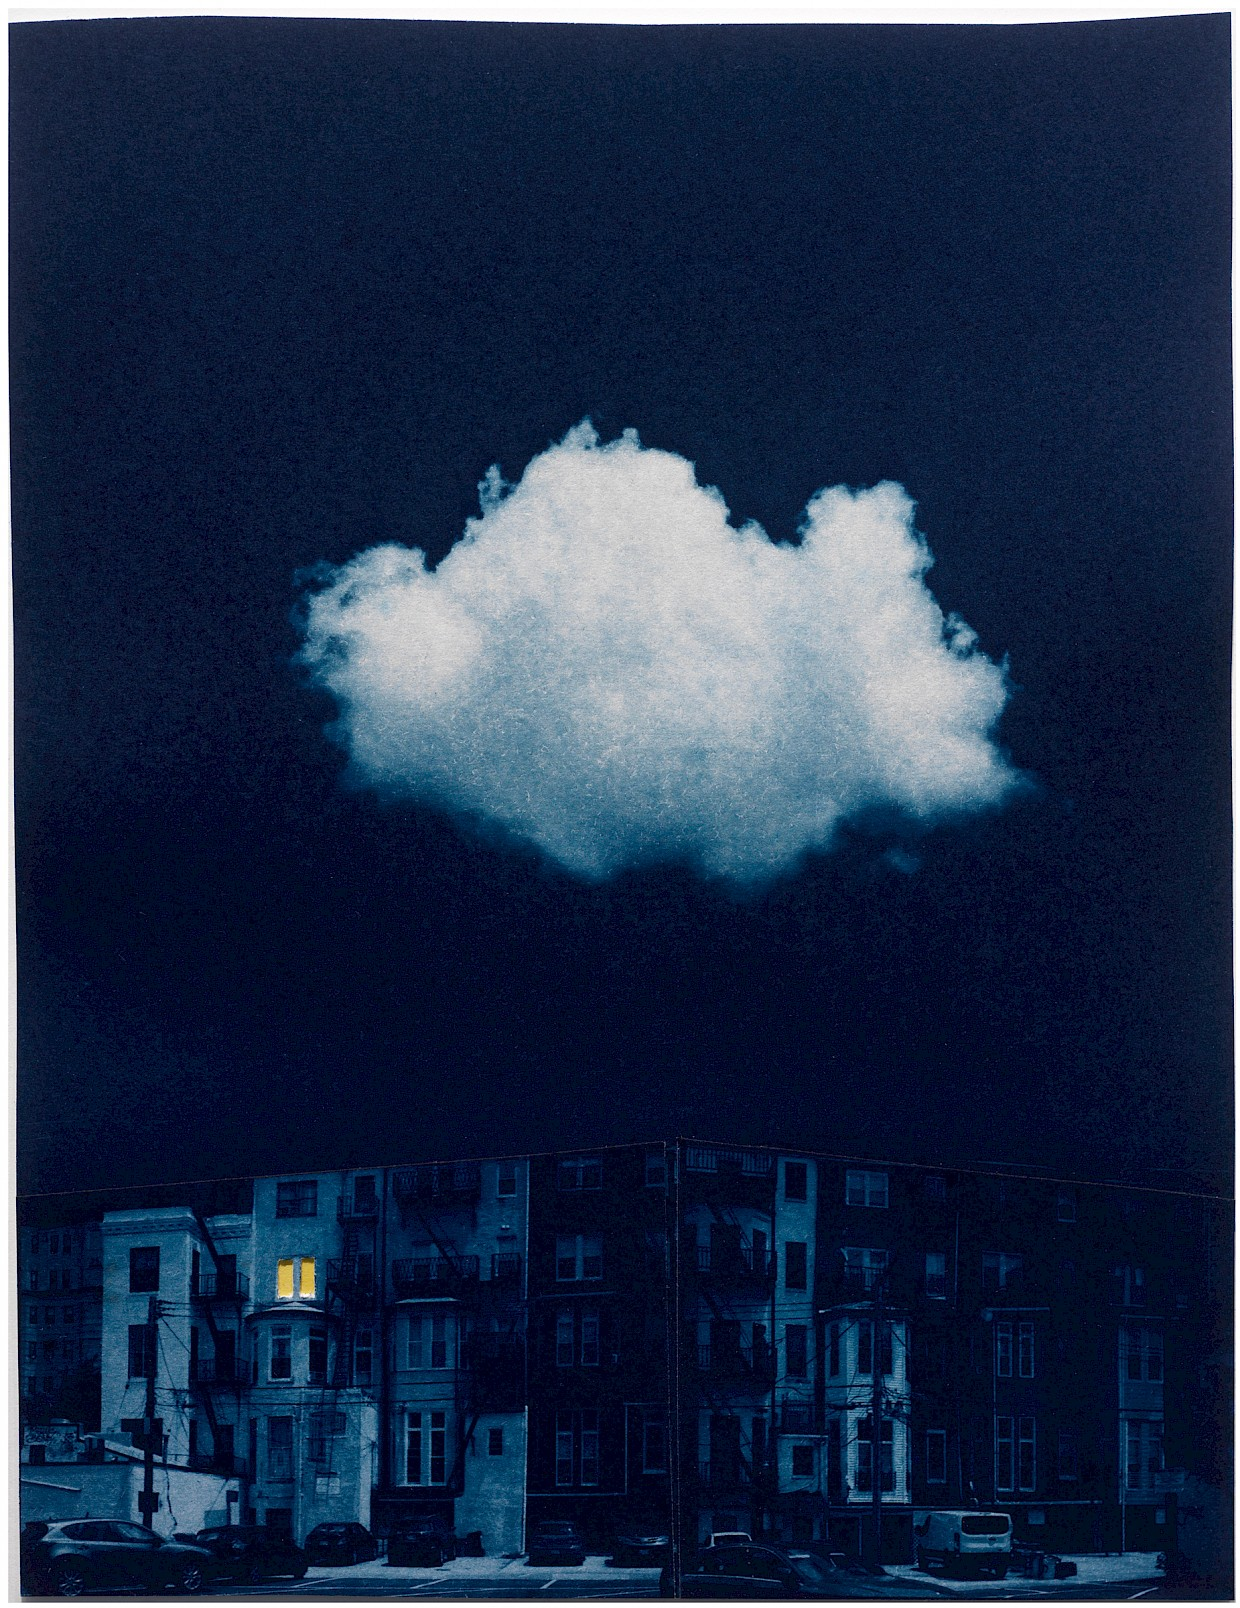 surreal cloud over row houses metaphor isolation pandemic meaning spirituality